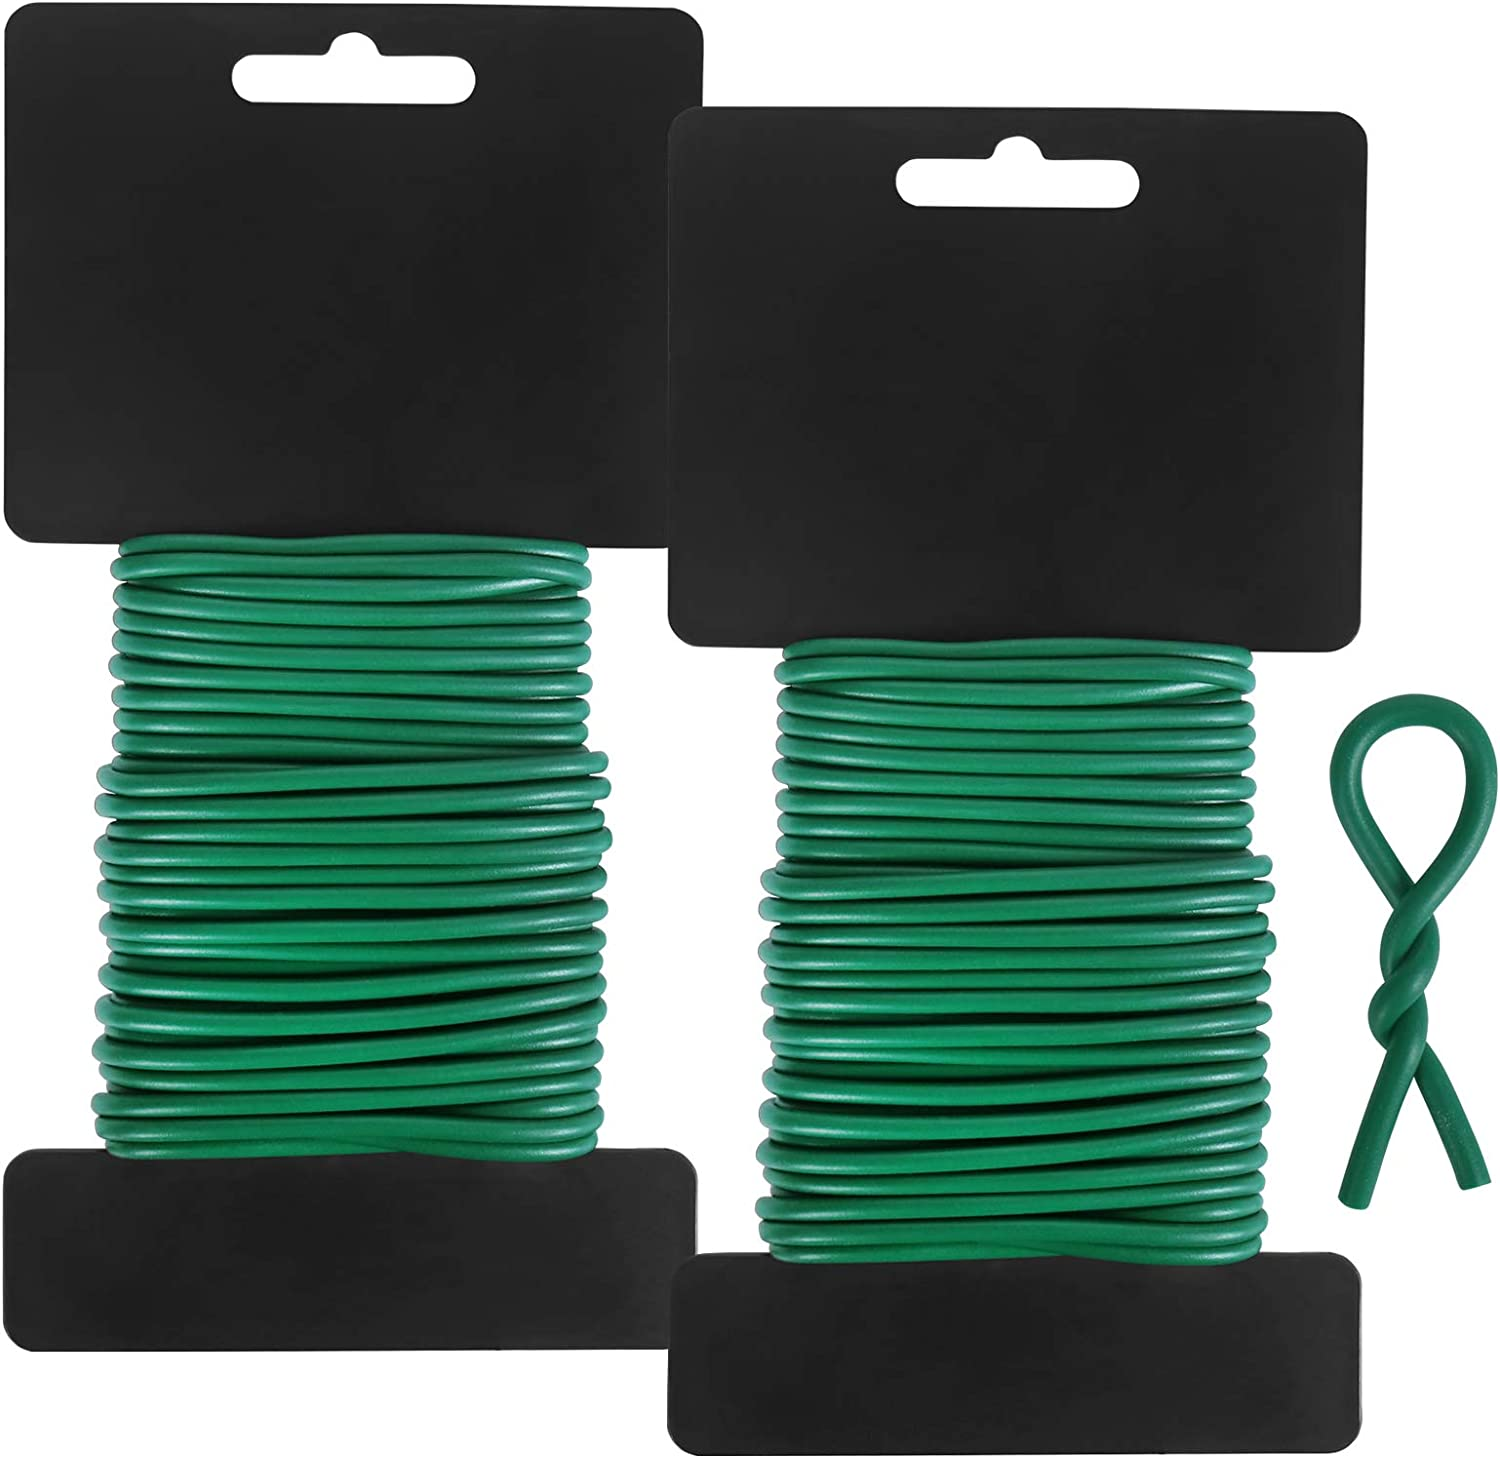 Tenn Well 3.5mm Soft Garden Twist Ties, 52 Feet Green Plant Training Wires for Tomato Plants, Climbing Roses, Vines and Cucumbers (2PCS X 26 Feet)